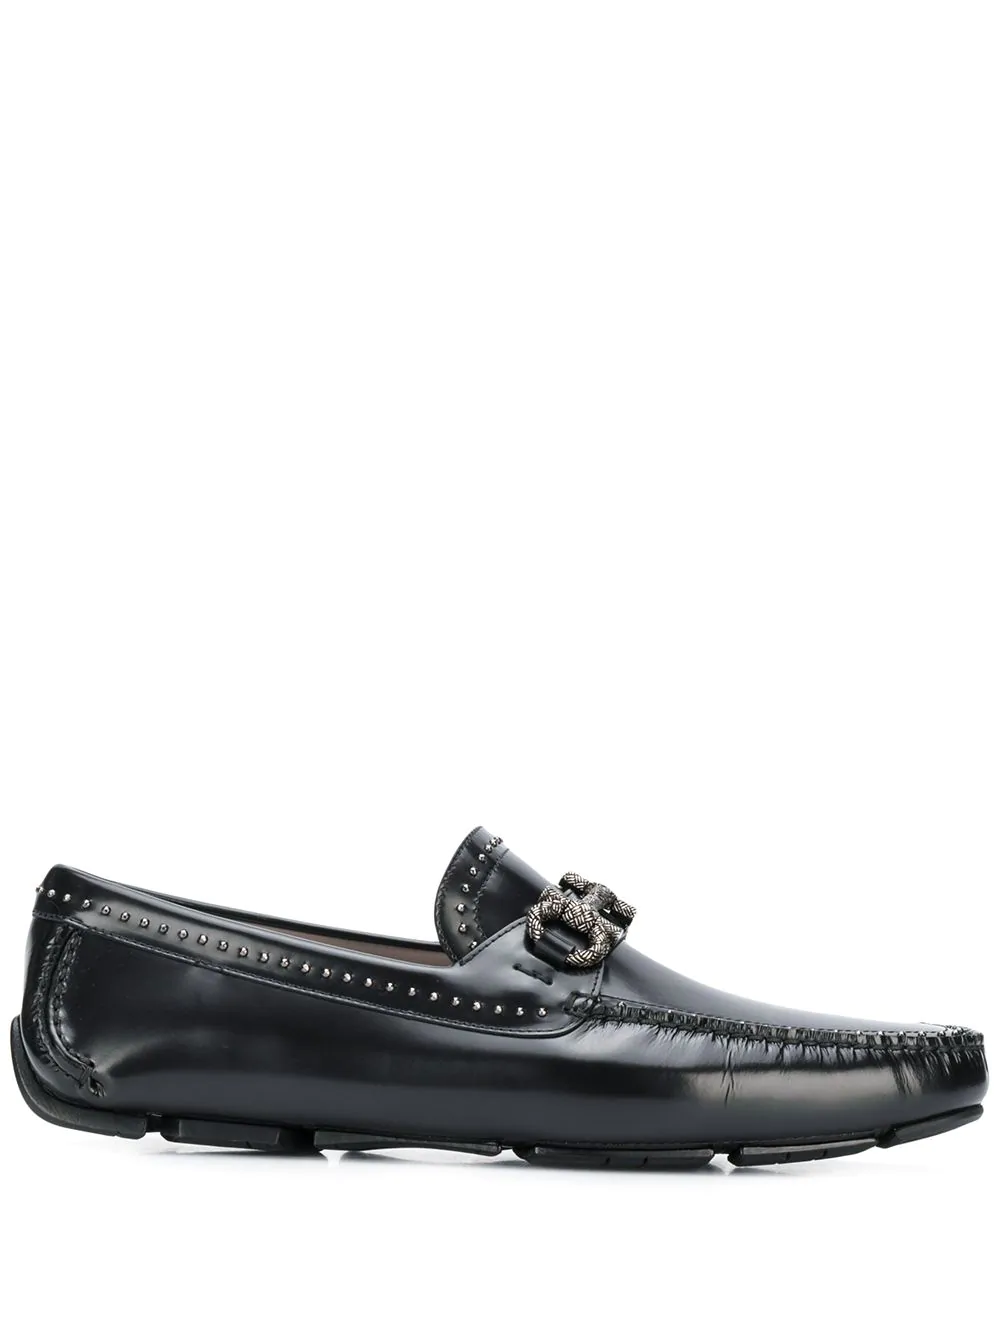 Gancini Studded Loafers